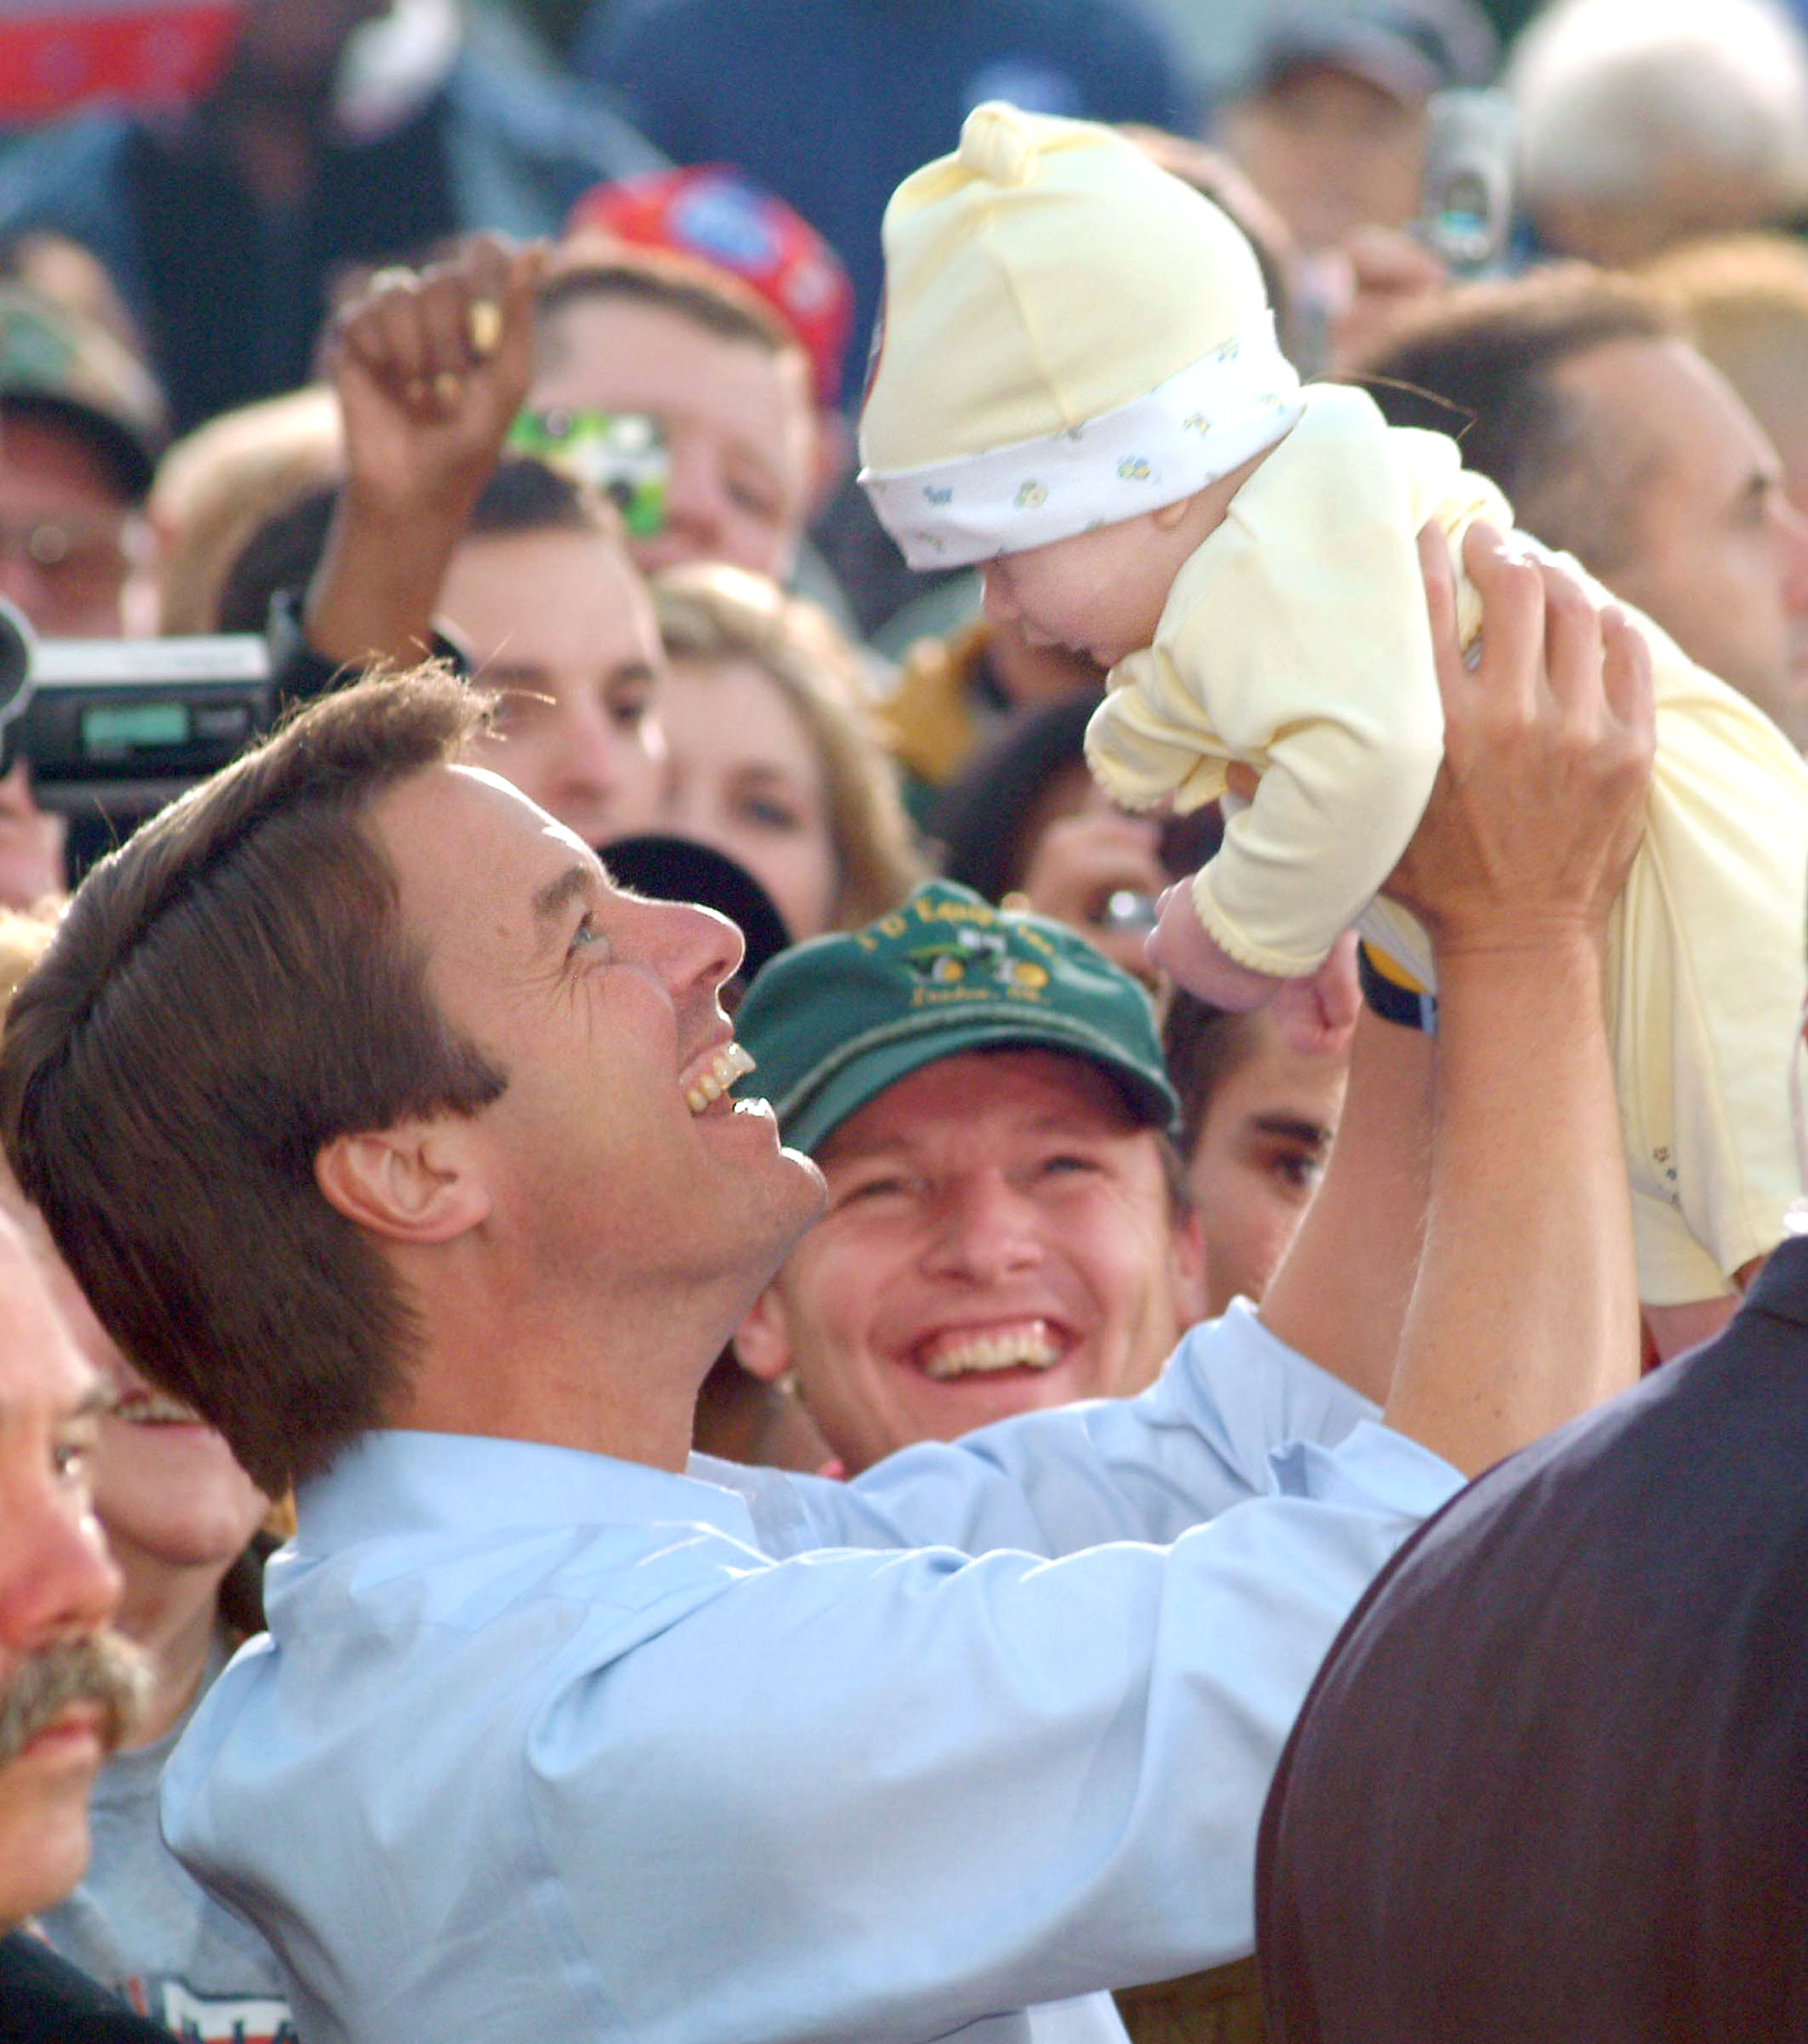 While running for vice president in 2004, John Edwards picked up a young member of the crowd in Lima, OH.